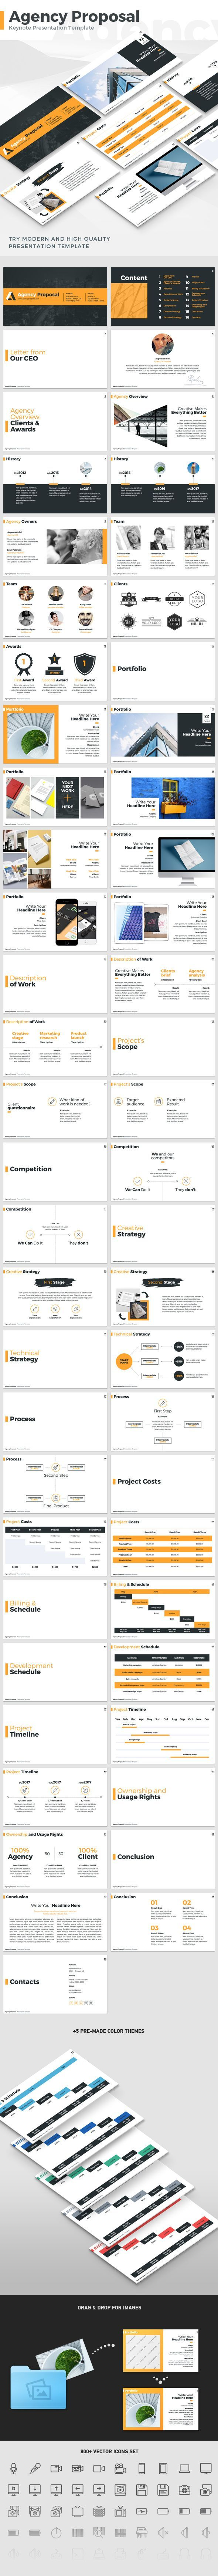 代理商提案主题演讲模板#keynote #presentation template•下载➝https://graphicriver.net/item/agency-proposal-keynote-presentation-template/18393177?ref=pxcr